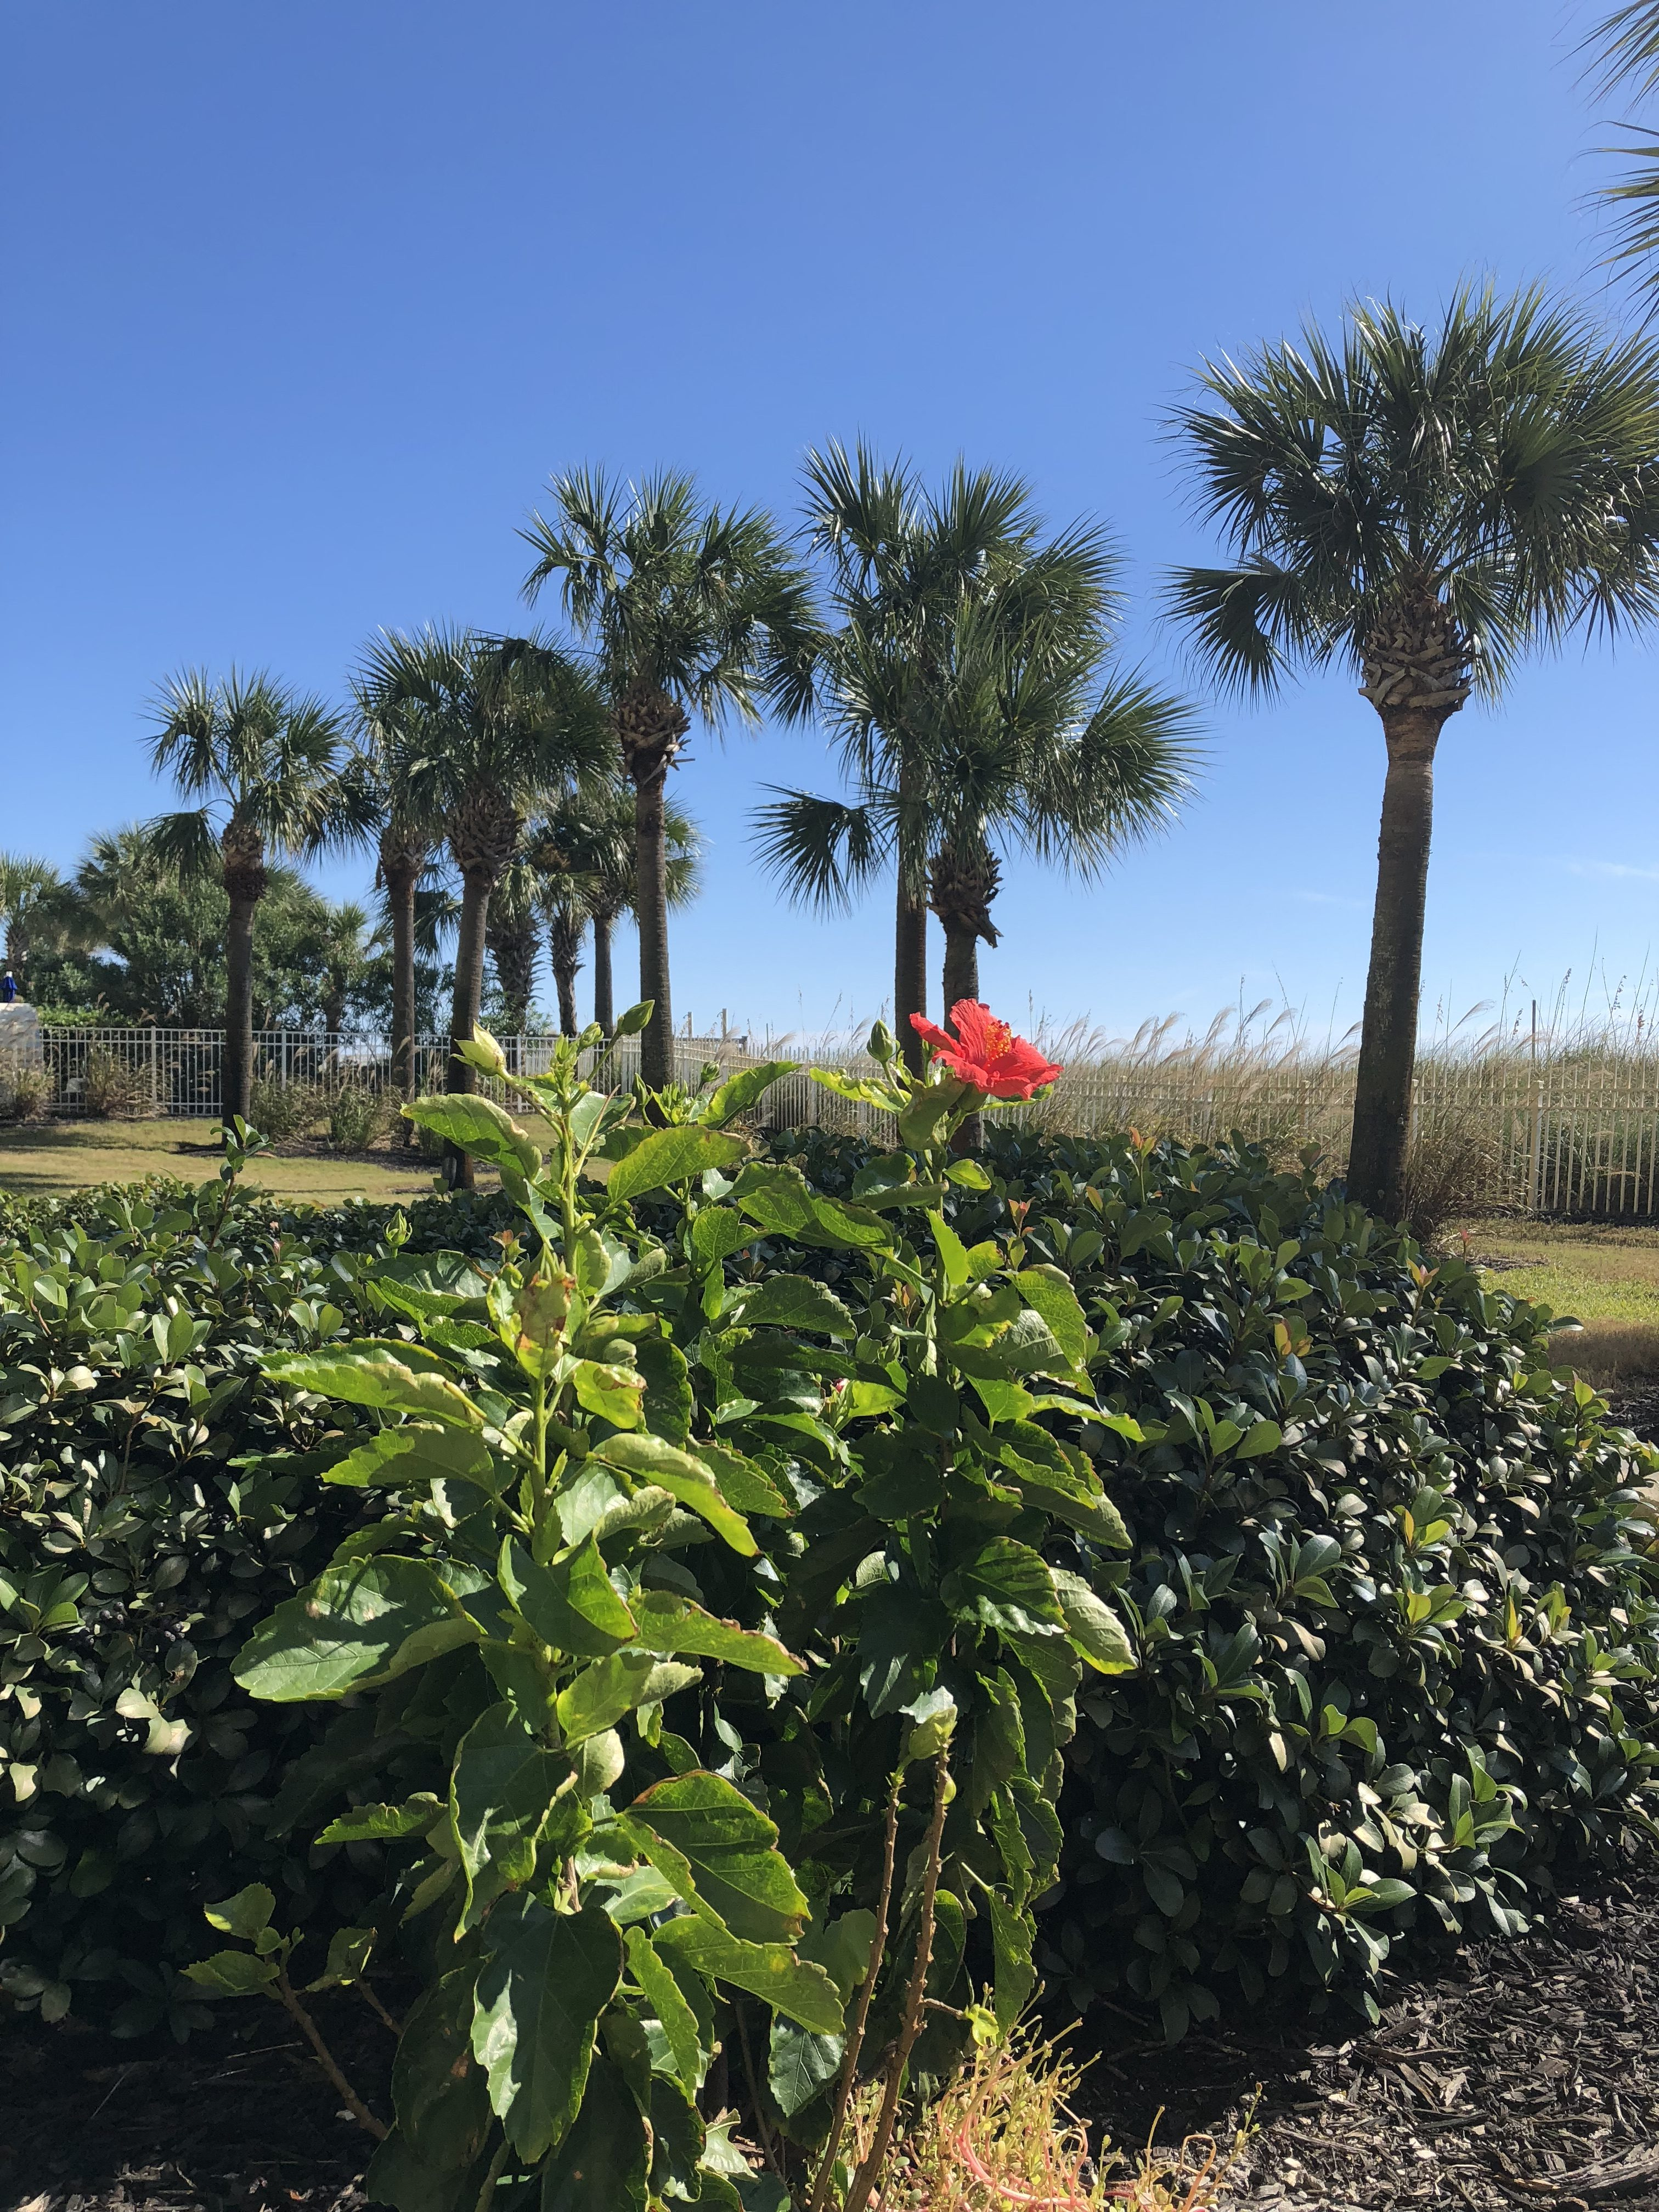 Hibiscus and palms at Sandnsol Destin oceanfront condo jade east